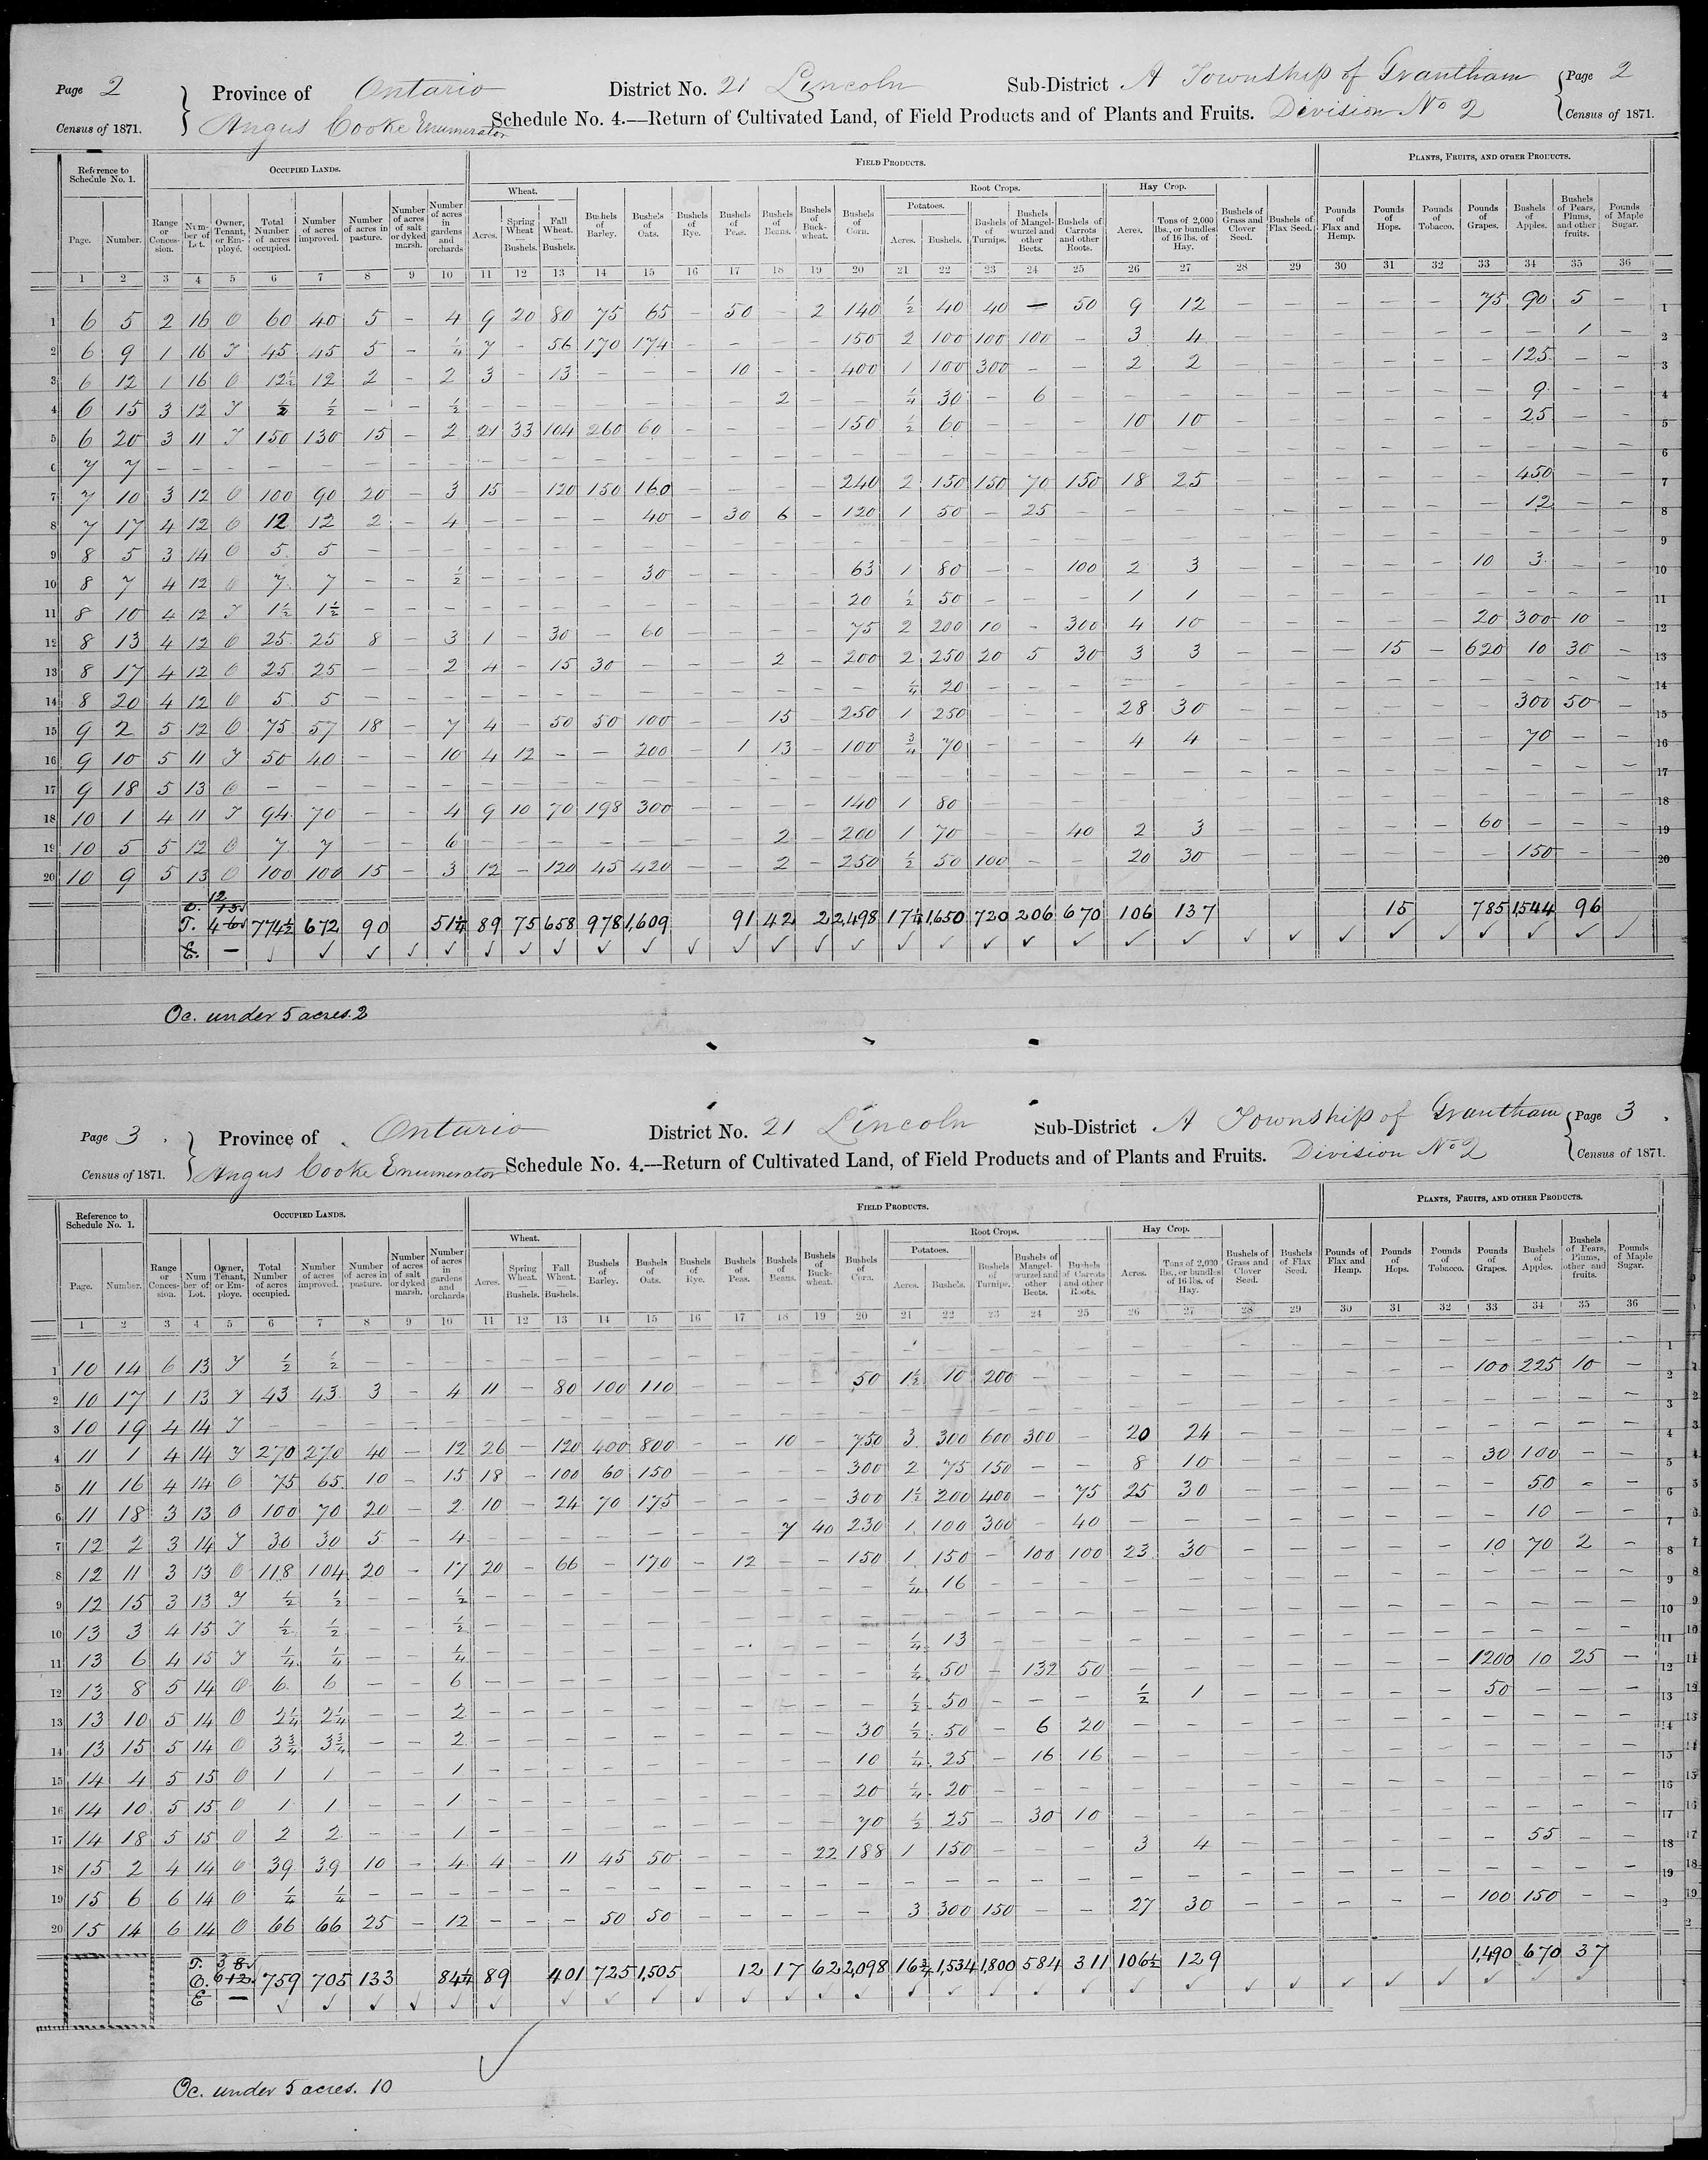 Title: Census of Canada, 1871 - Mikan Number: 142105 - Microform: c-9921